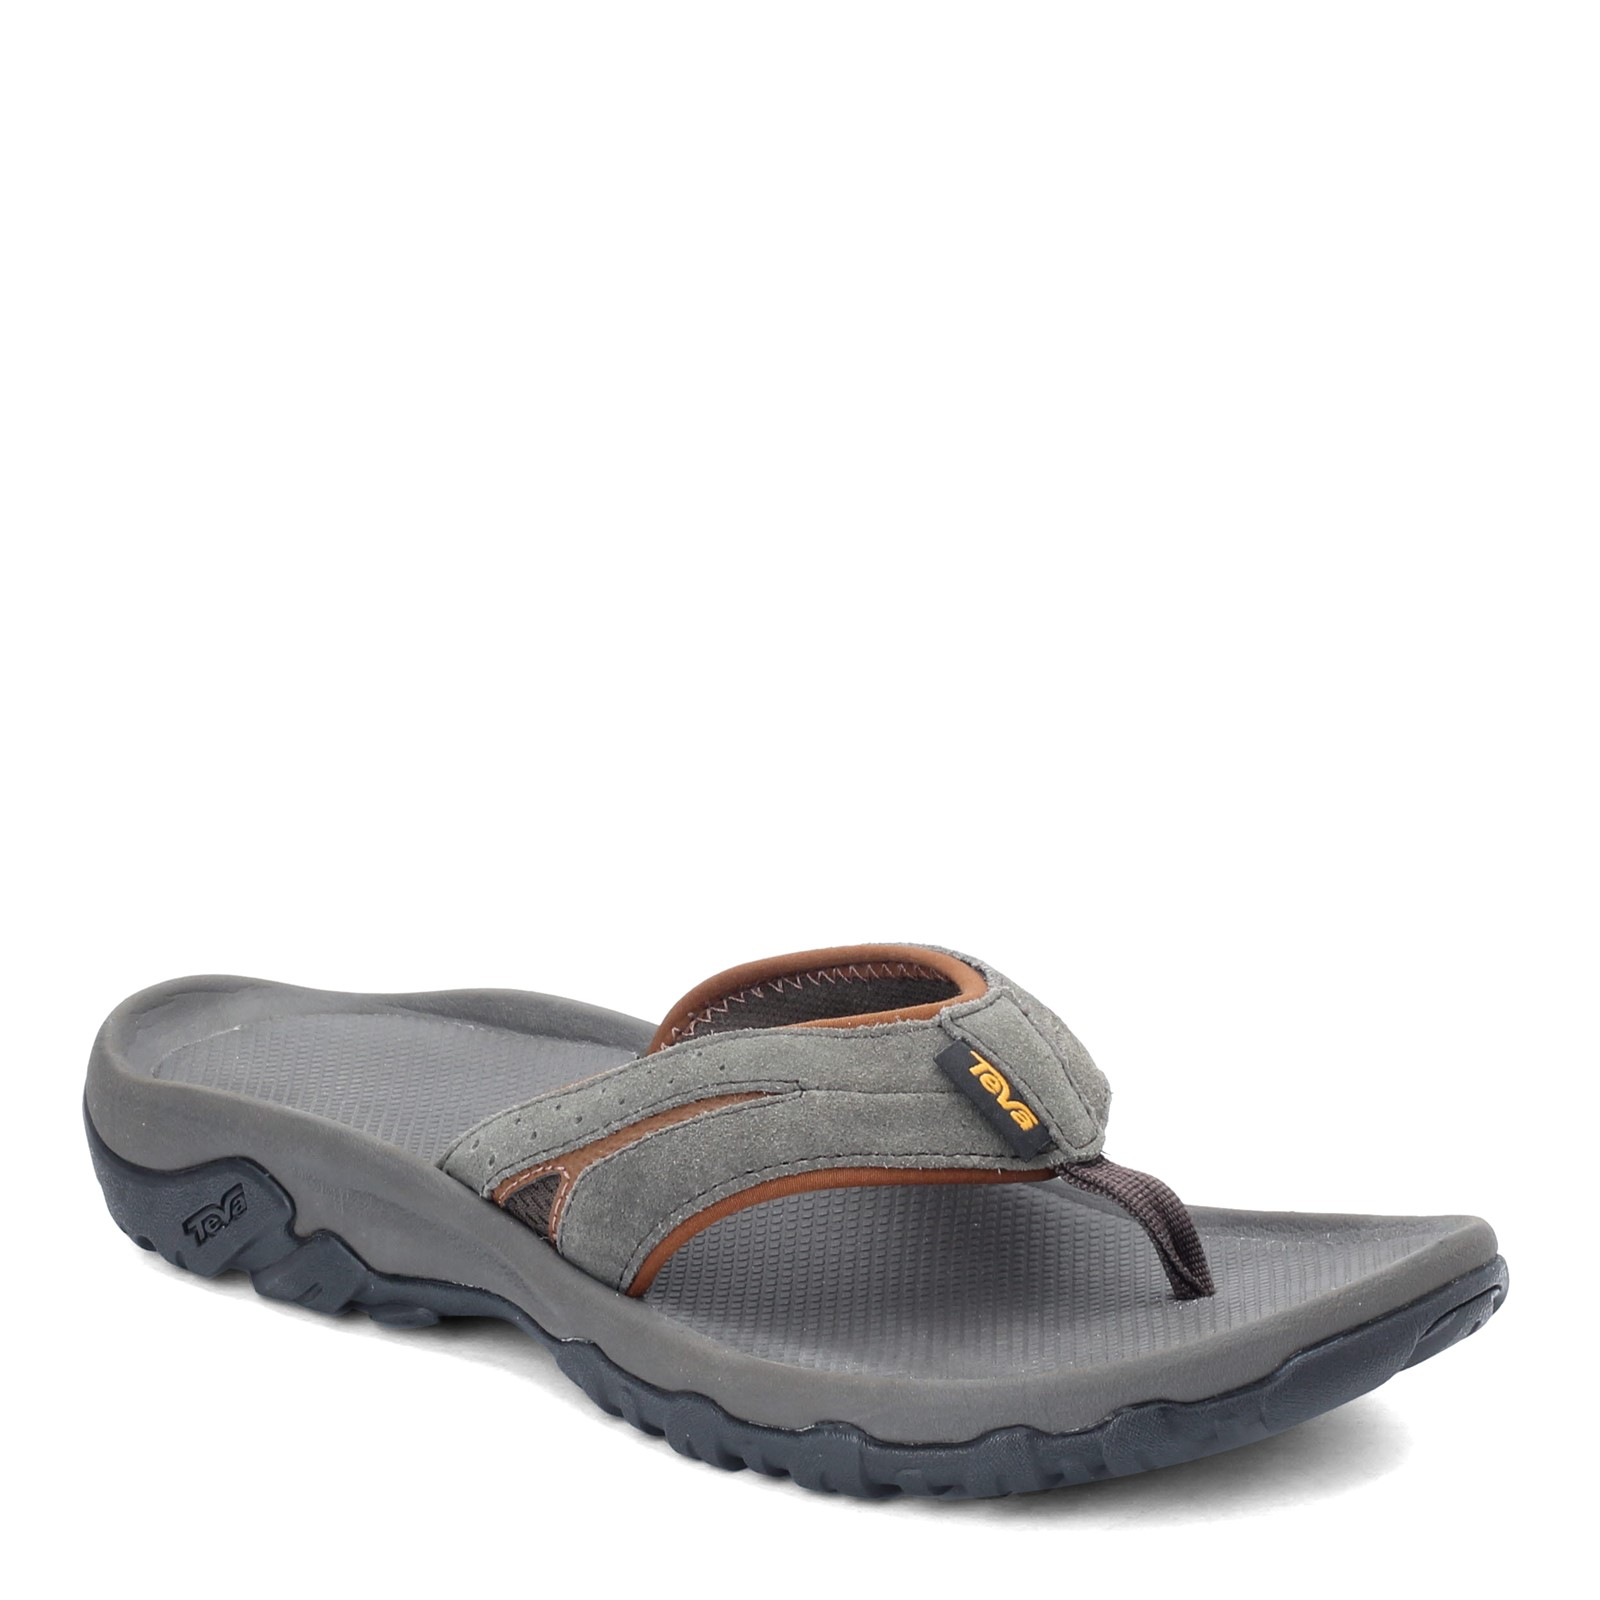 Men's Teva, Katavi 2 Thong Sandals